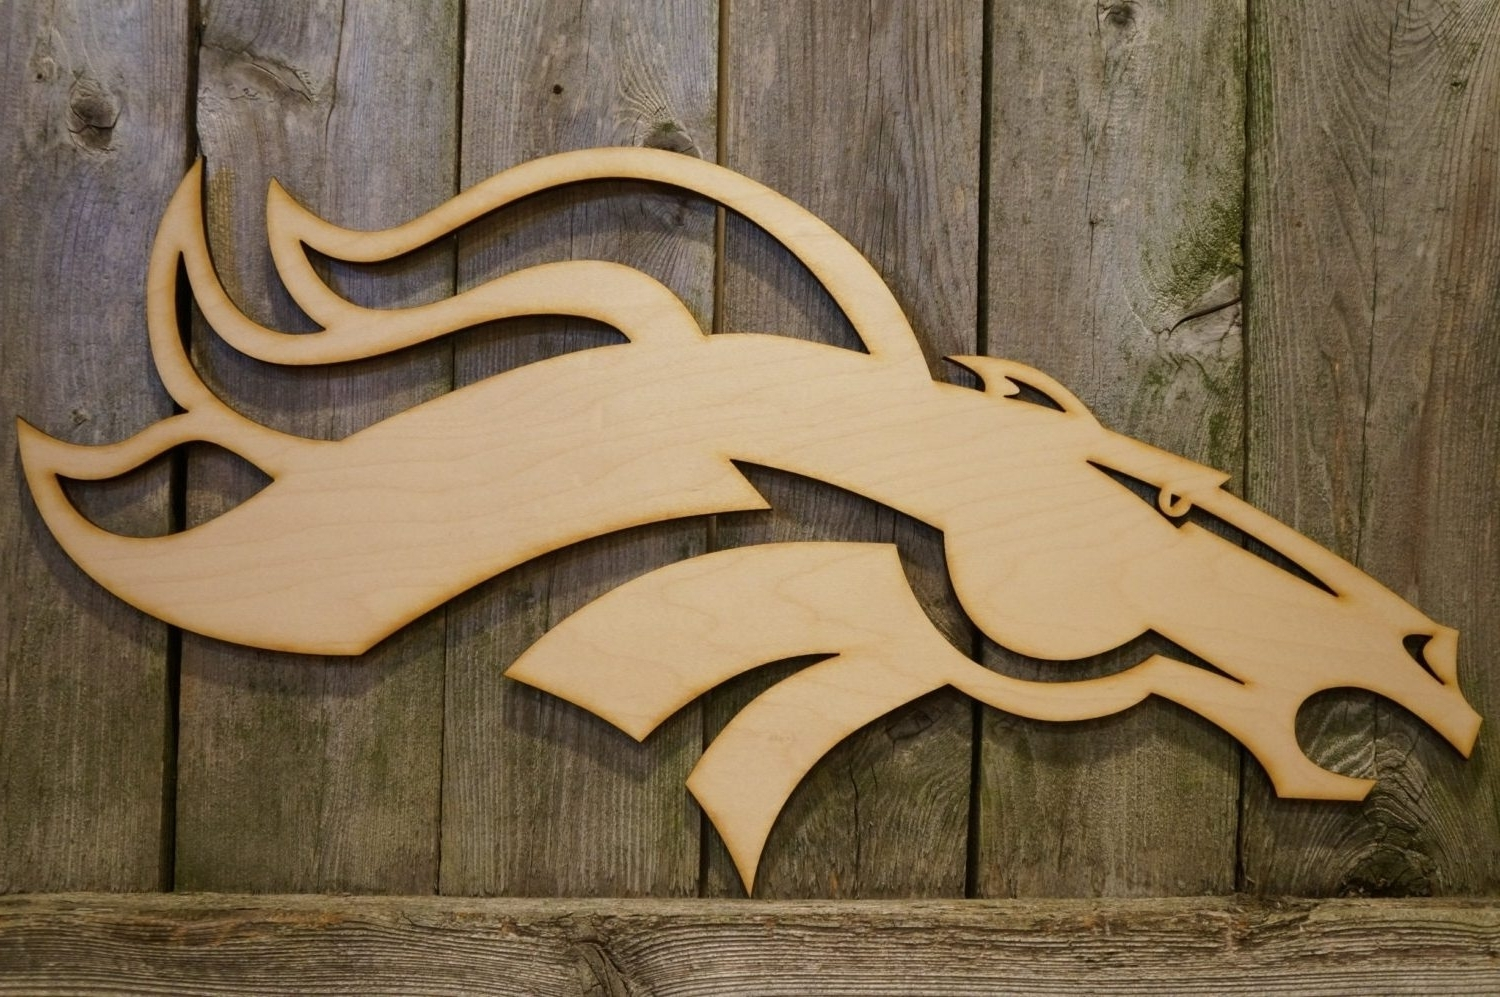 2018 Fascinating Denver Broncos Wall Decor Interior Decorating Chic With Broncos Wall Art (View 3 of 15)